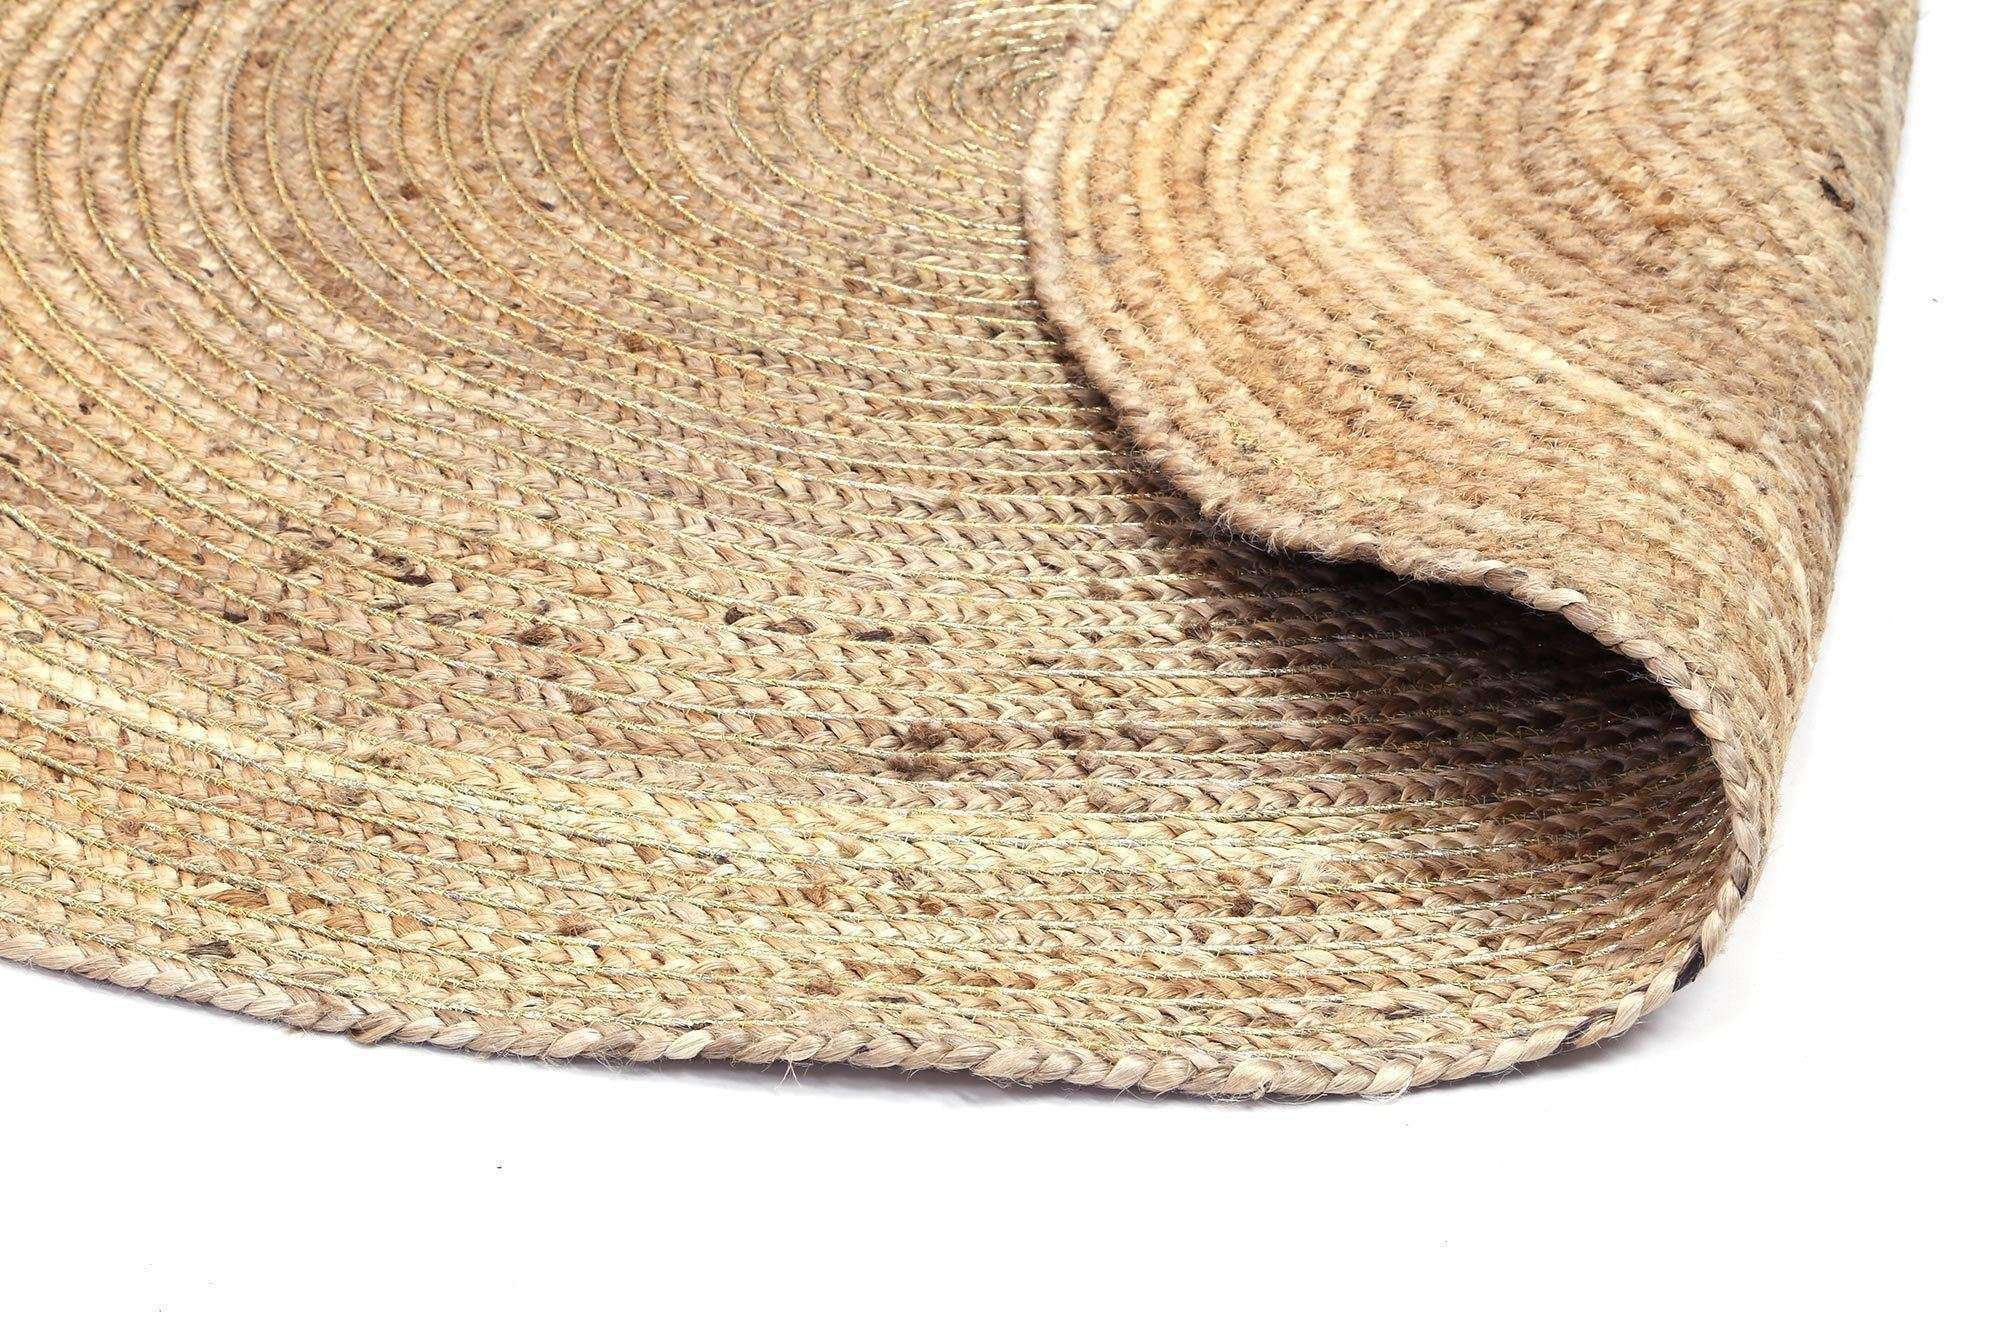 Faro Gold Jute Round Rug, [cheapest rugs online], [au rugs], [rugs australia]